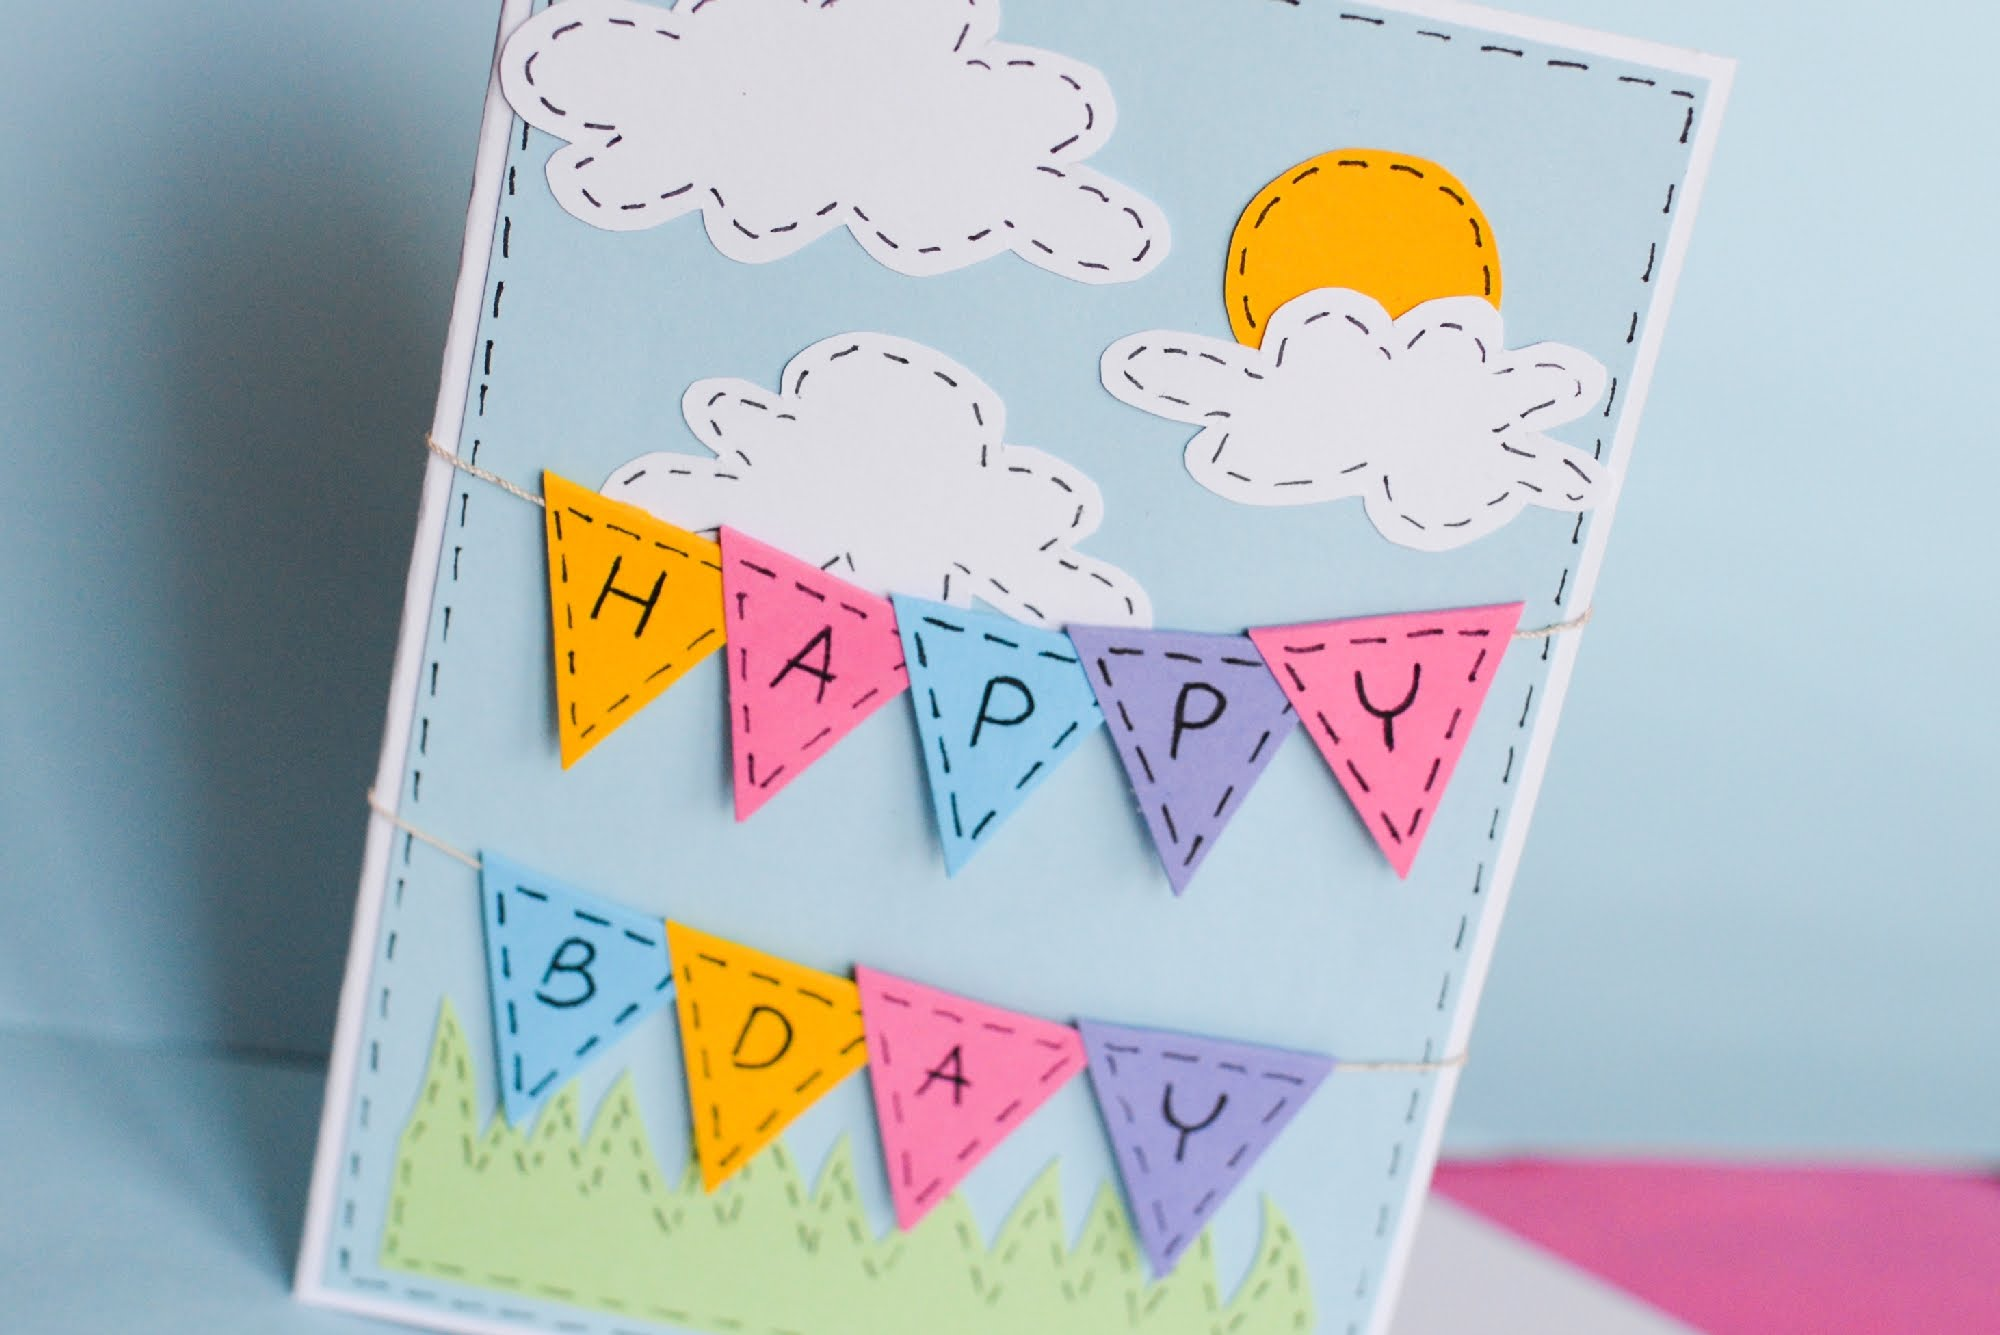 How to Make - Greeting Birthday Card - Step by Step | Kartka Na ...